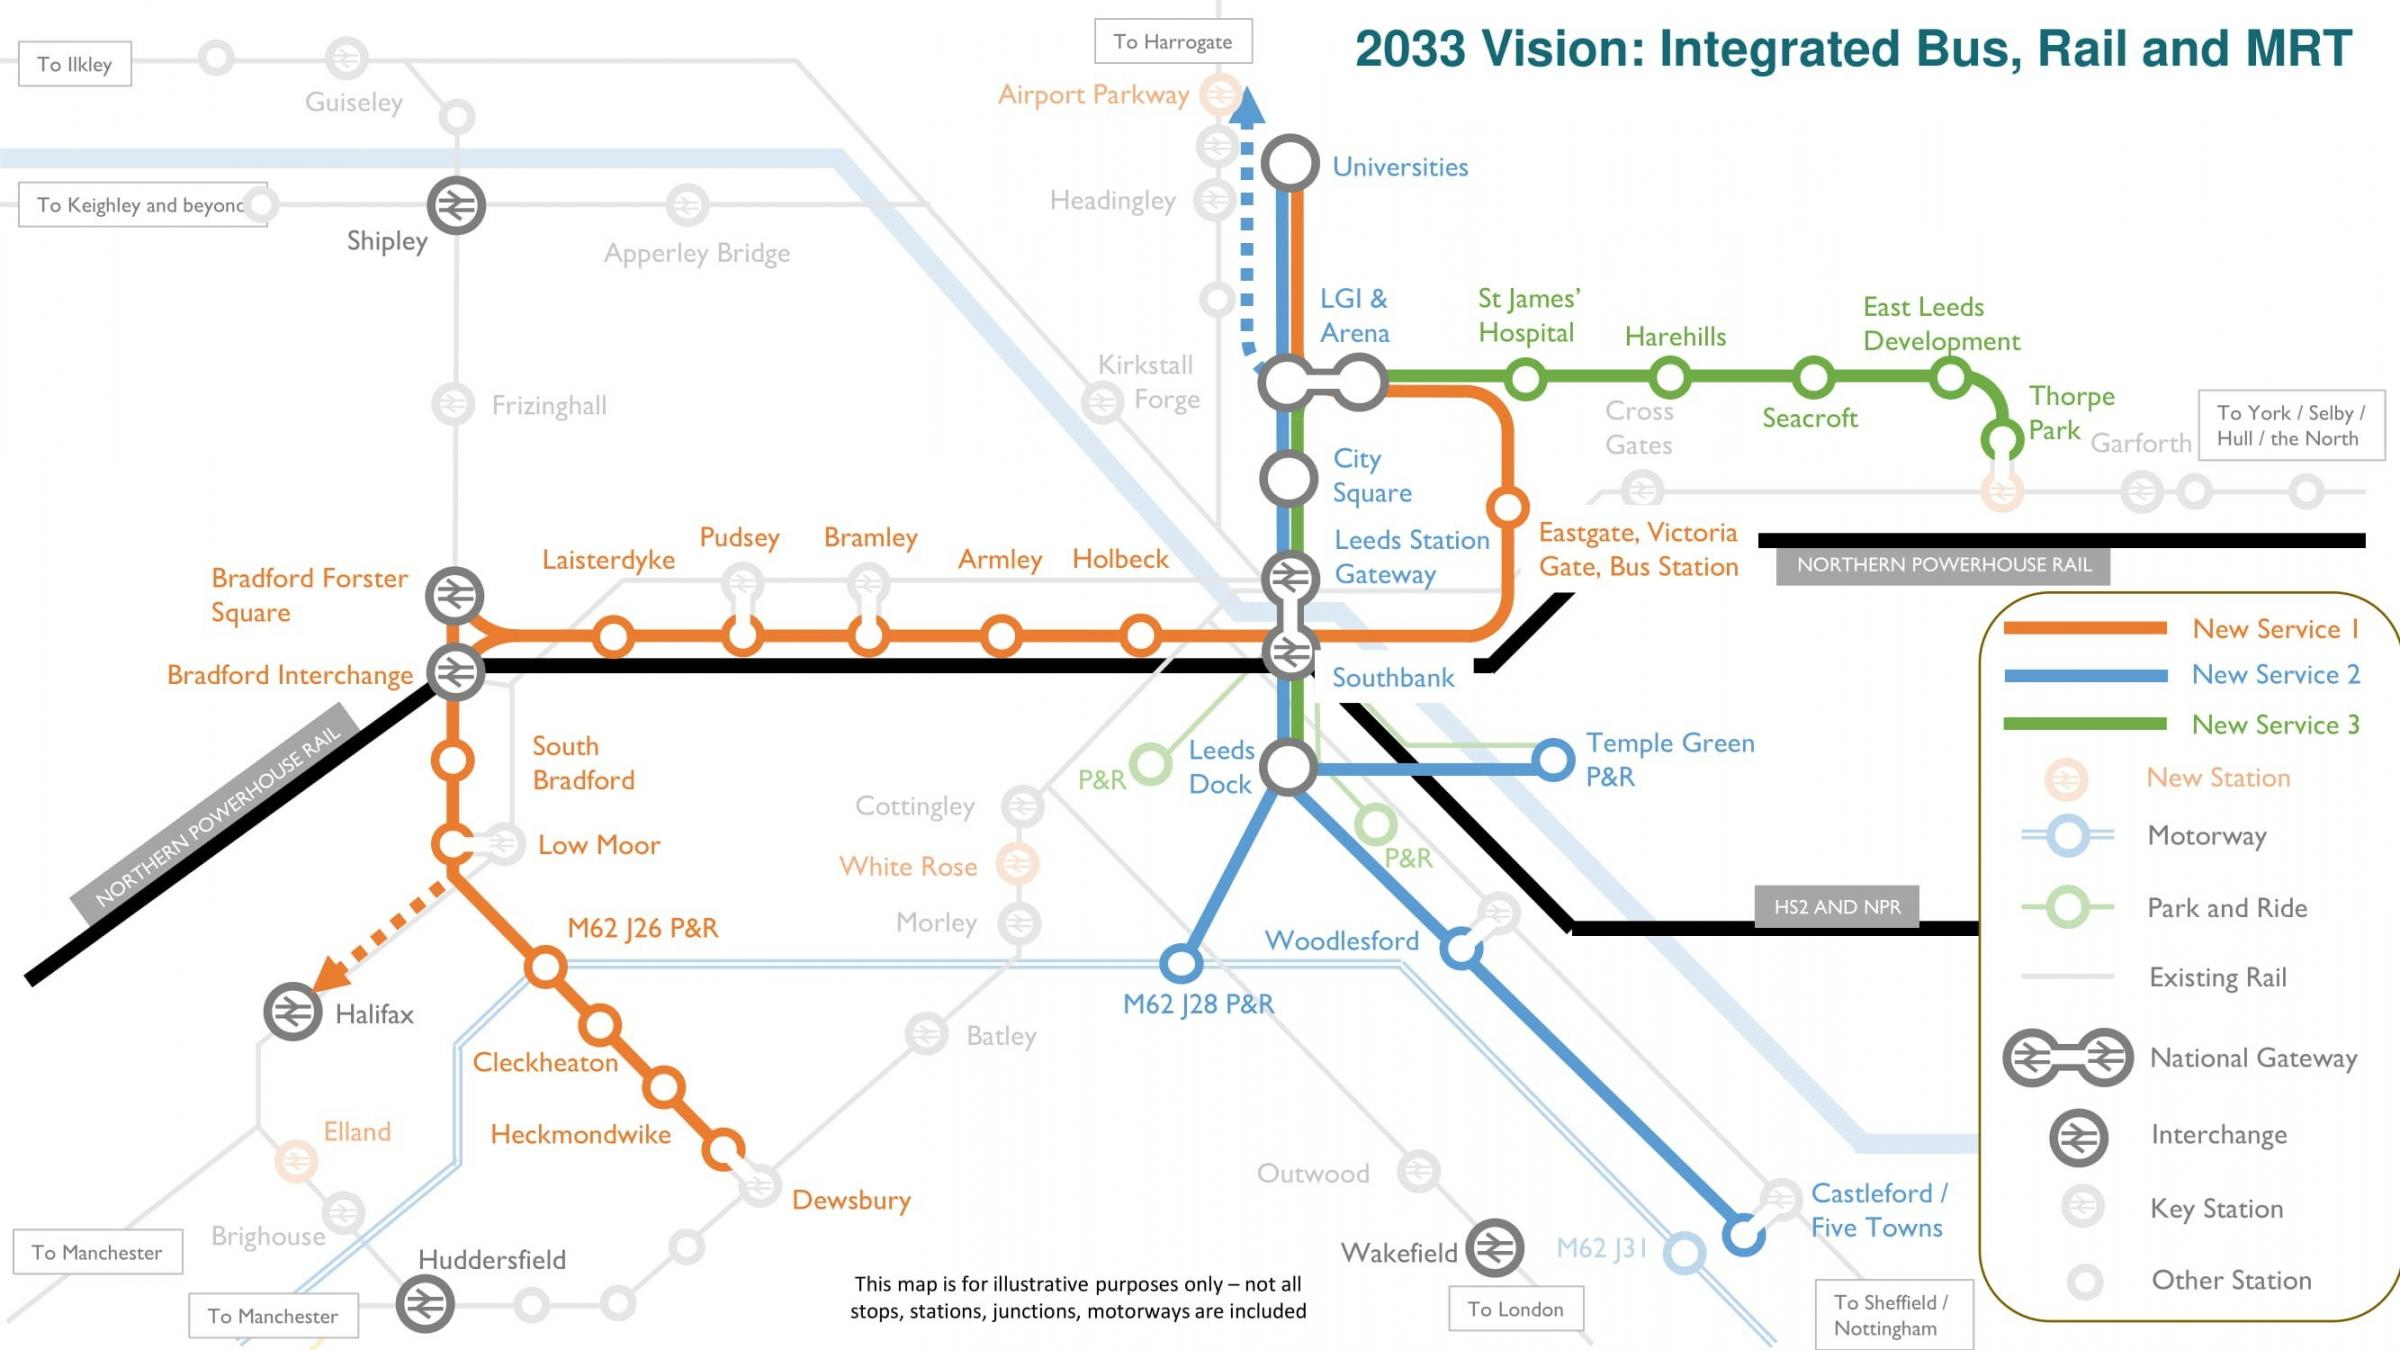 West Yorkshire mass transit plans